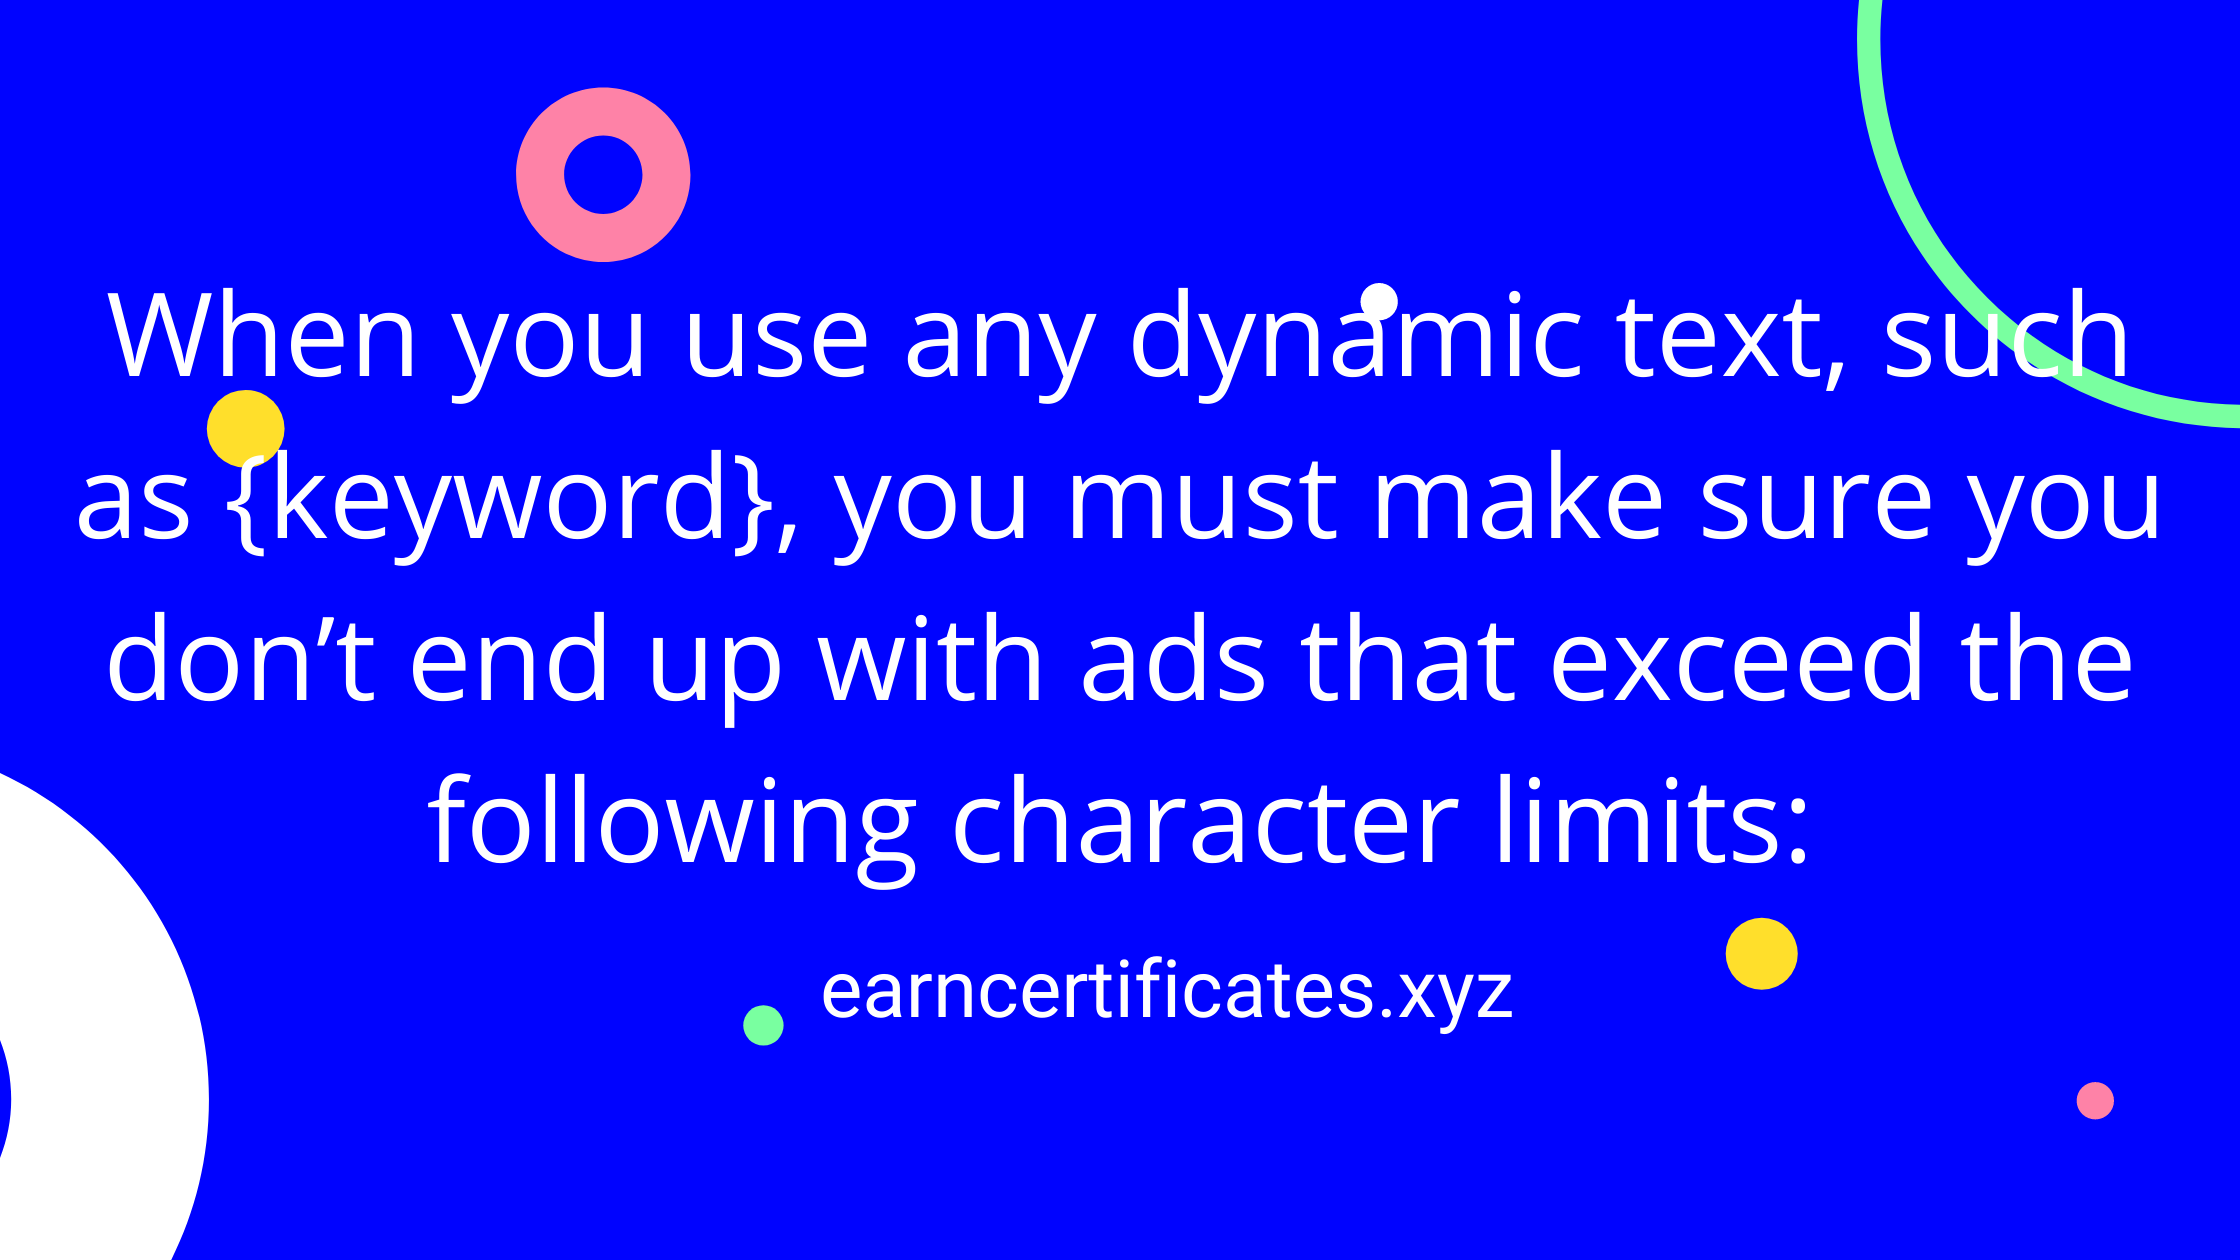 When you use any dynamic text, such as {keyword}, you must make sure you don't end up with ads that exceed the following character limits: